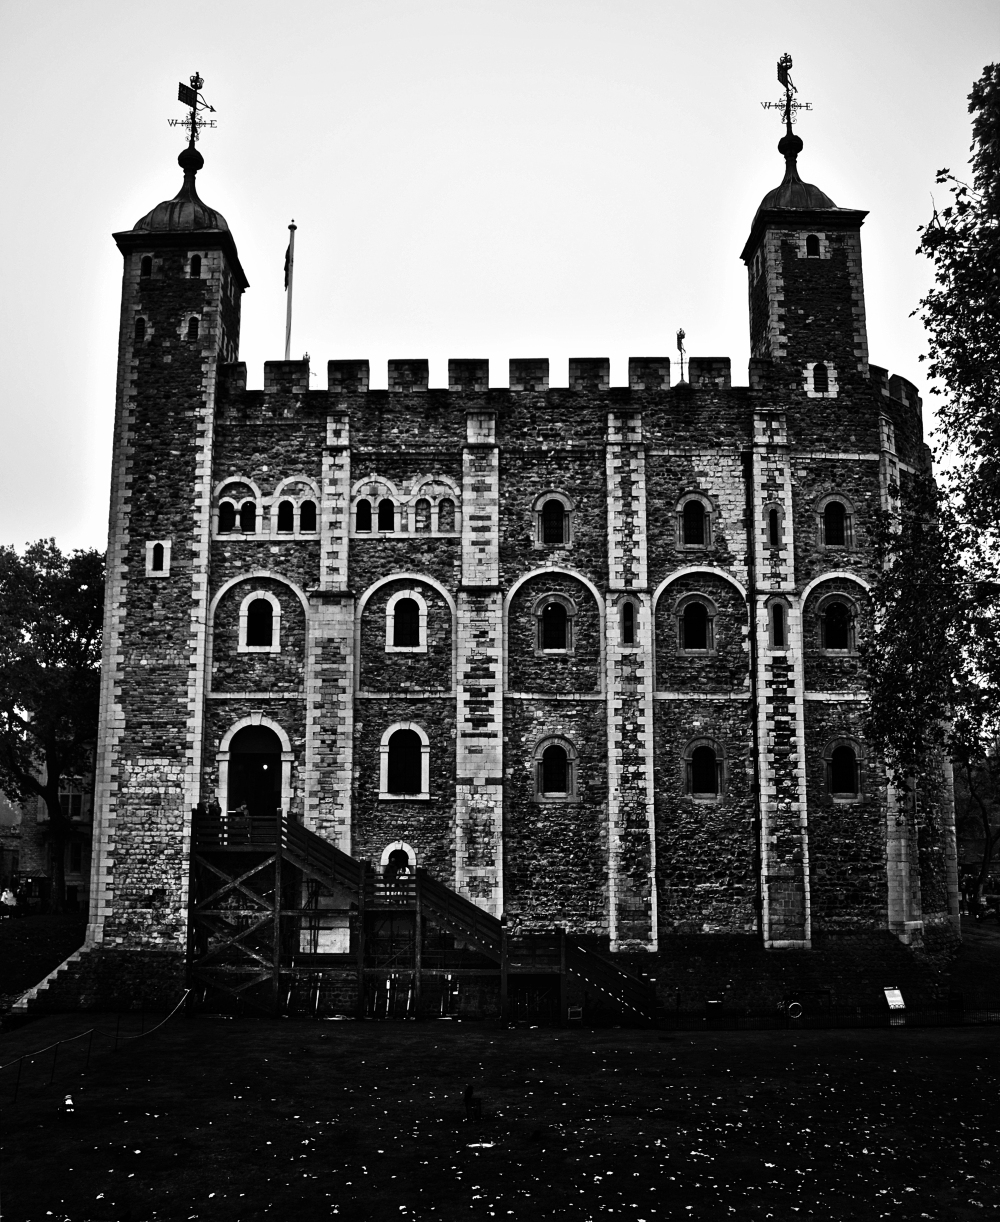 white-tower tower-of-london london england